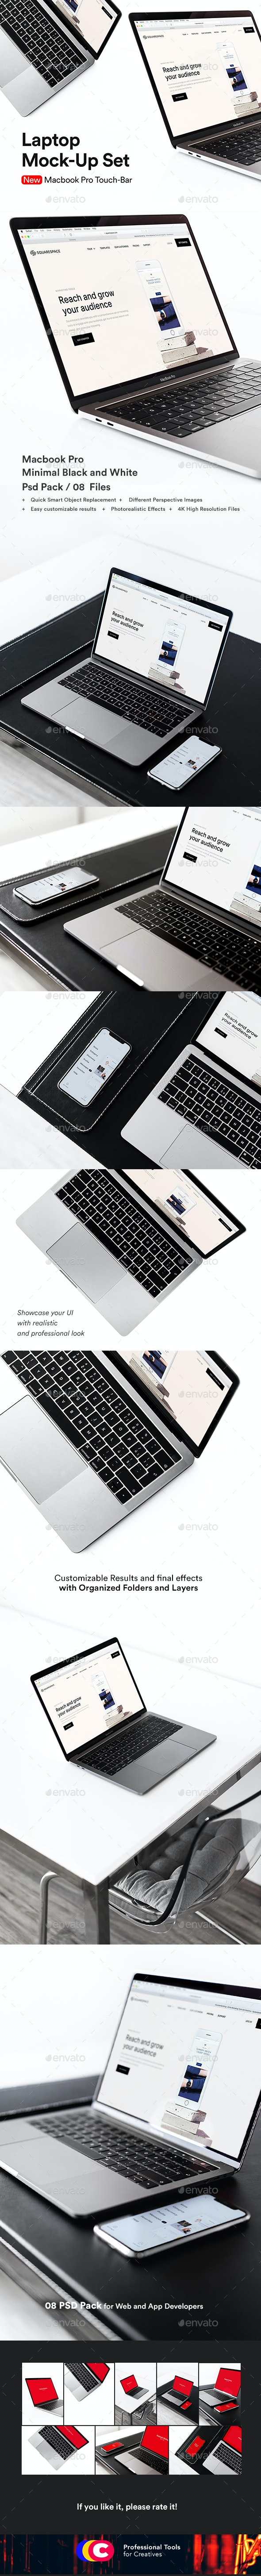 Minimal Laptop Mock-Up Psd Black and White